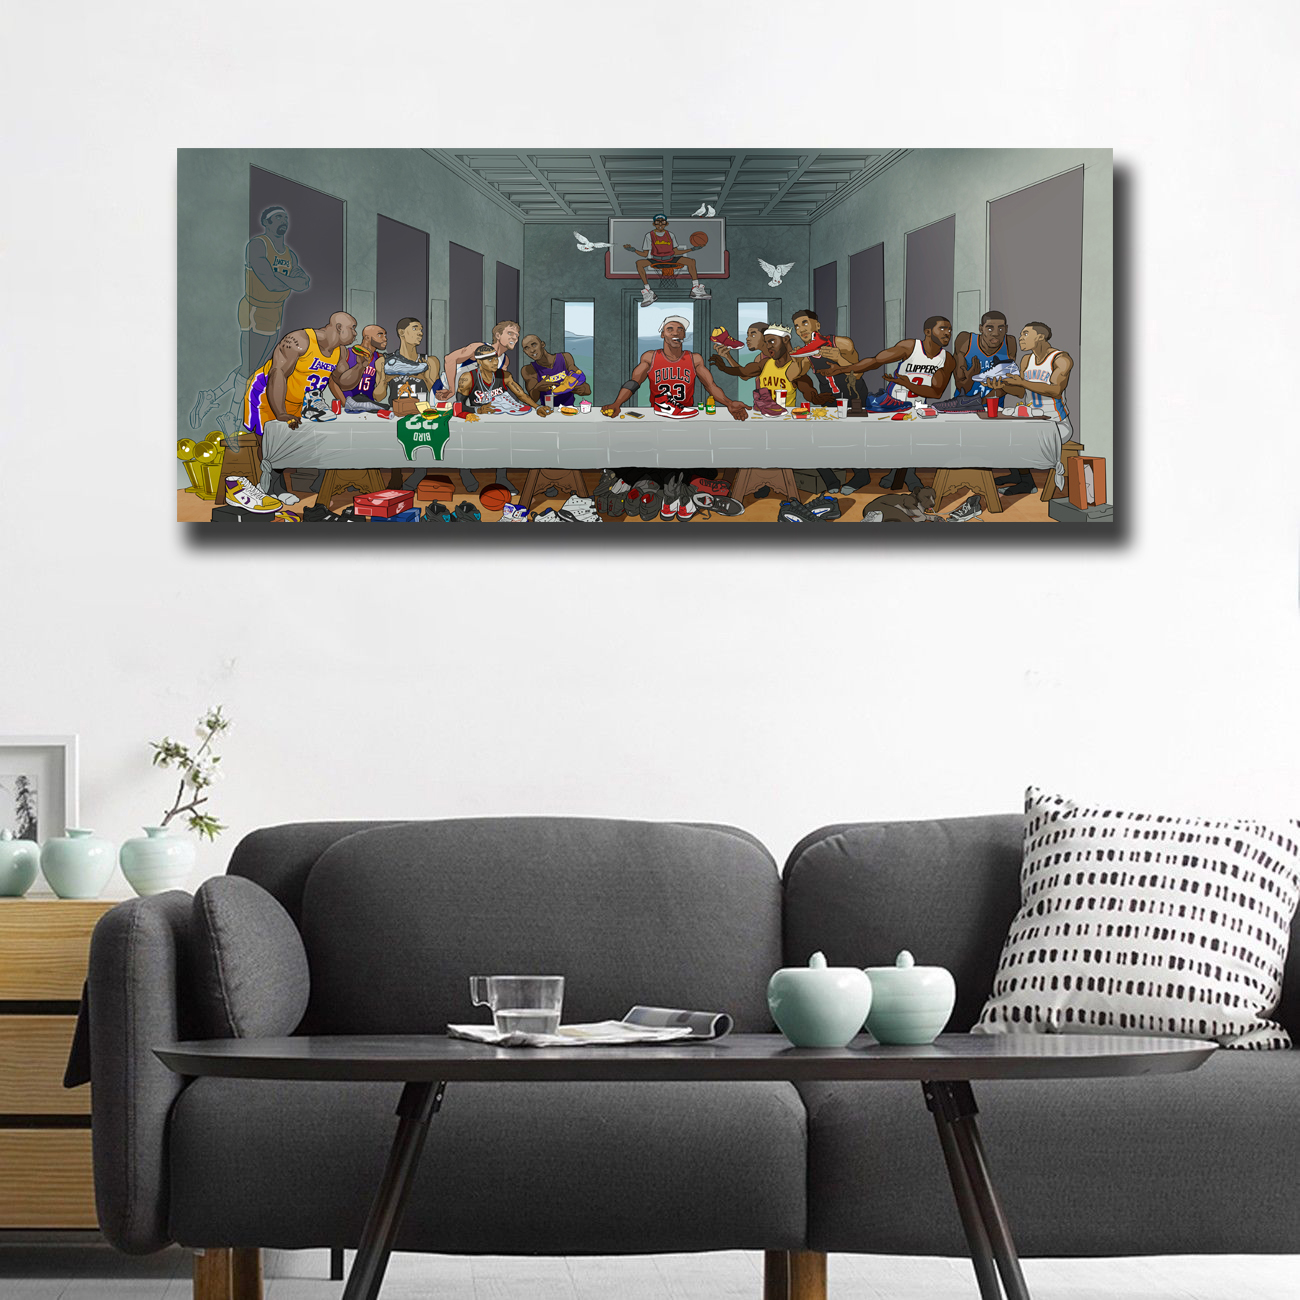 Basketball Players Last Supper Painting Printed on Canvas